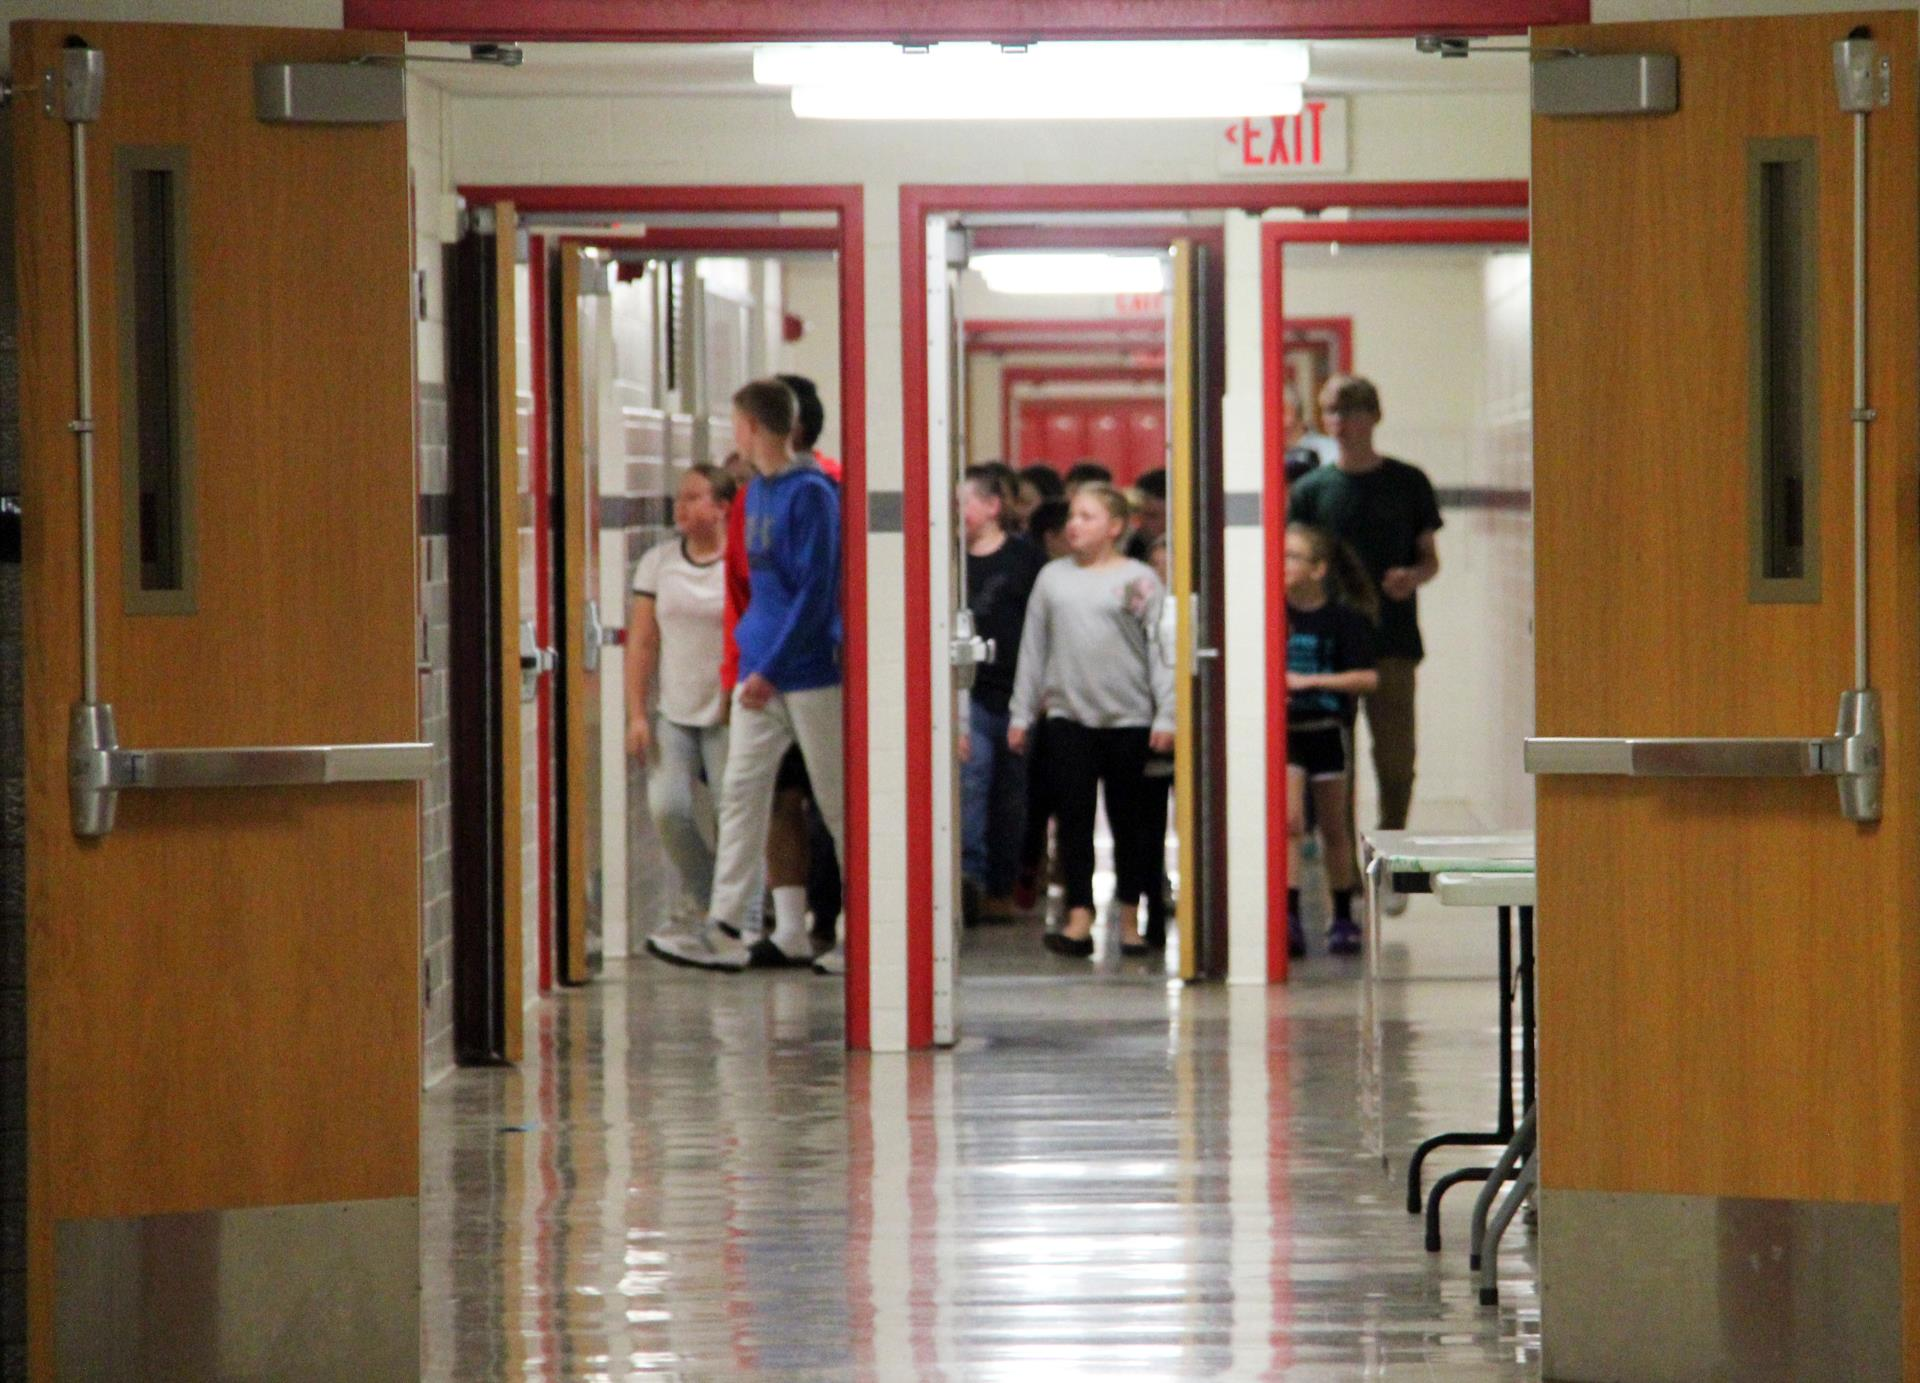 additional students walking in hallway